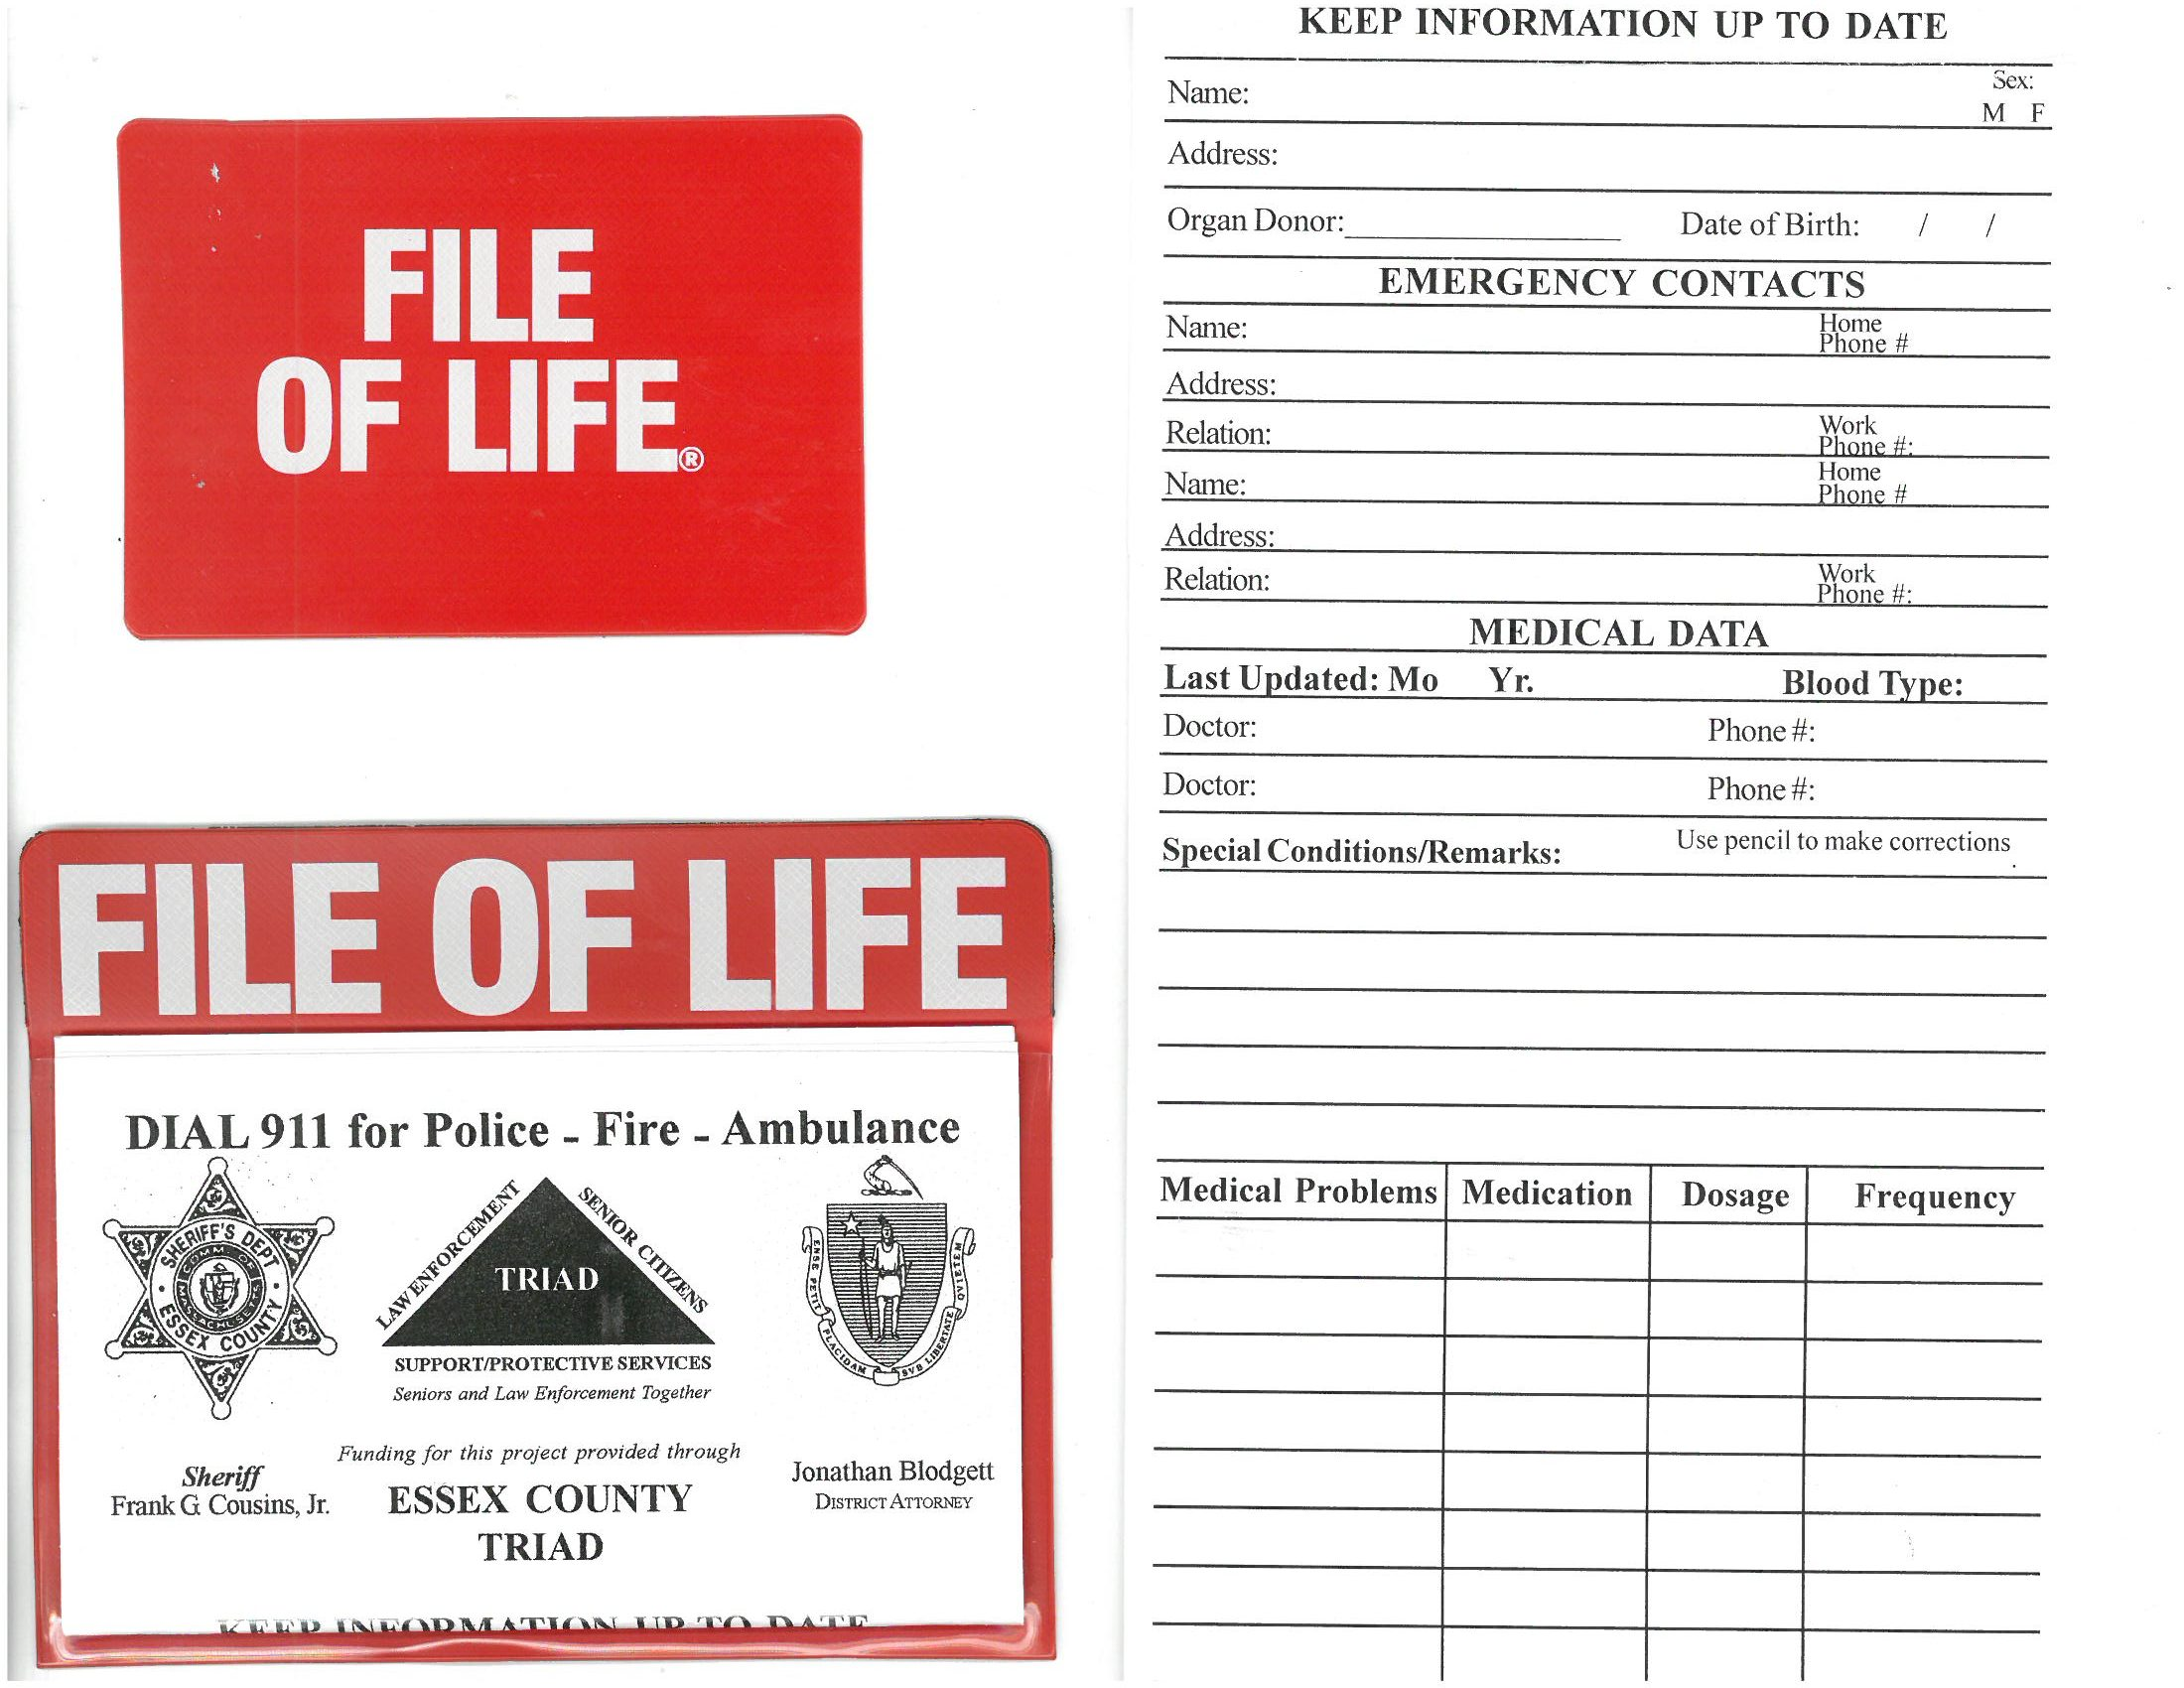 File of Life Images